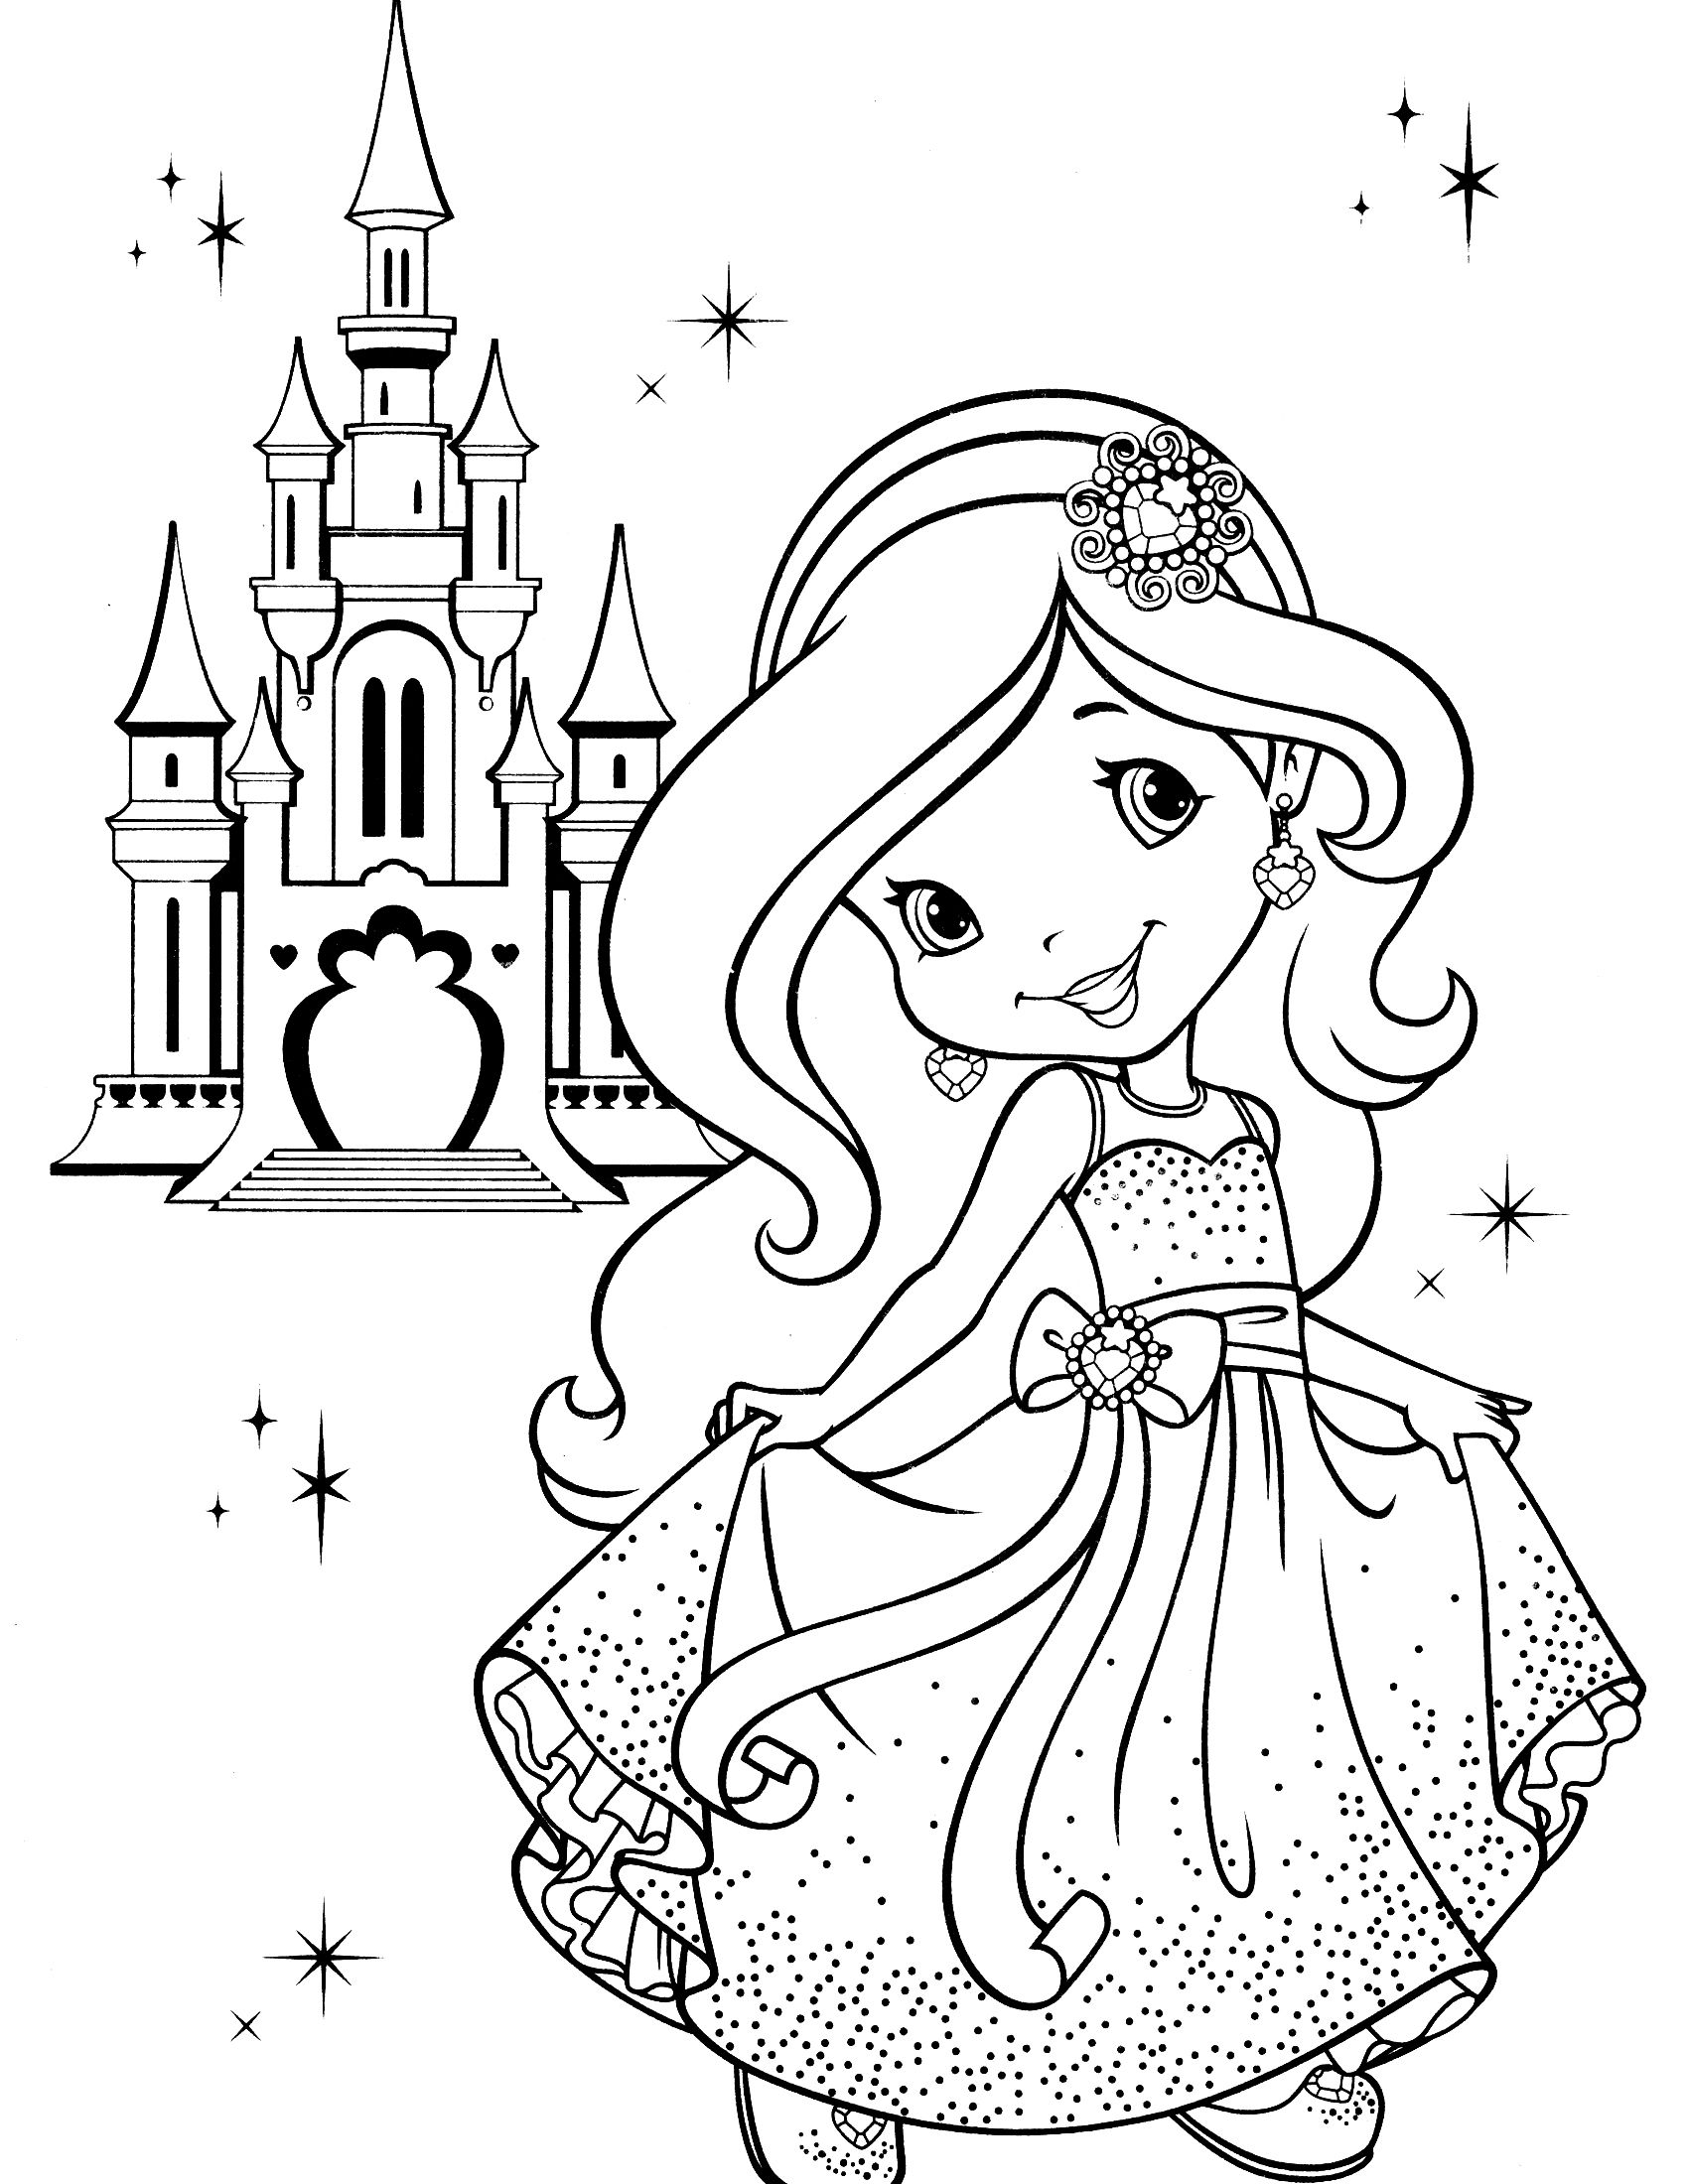 strawberry shortcake coloring page diy ideas pinterest